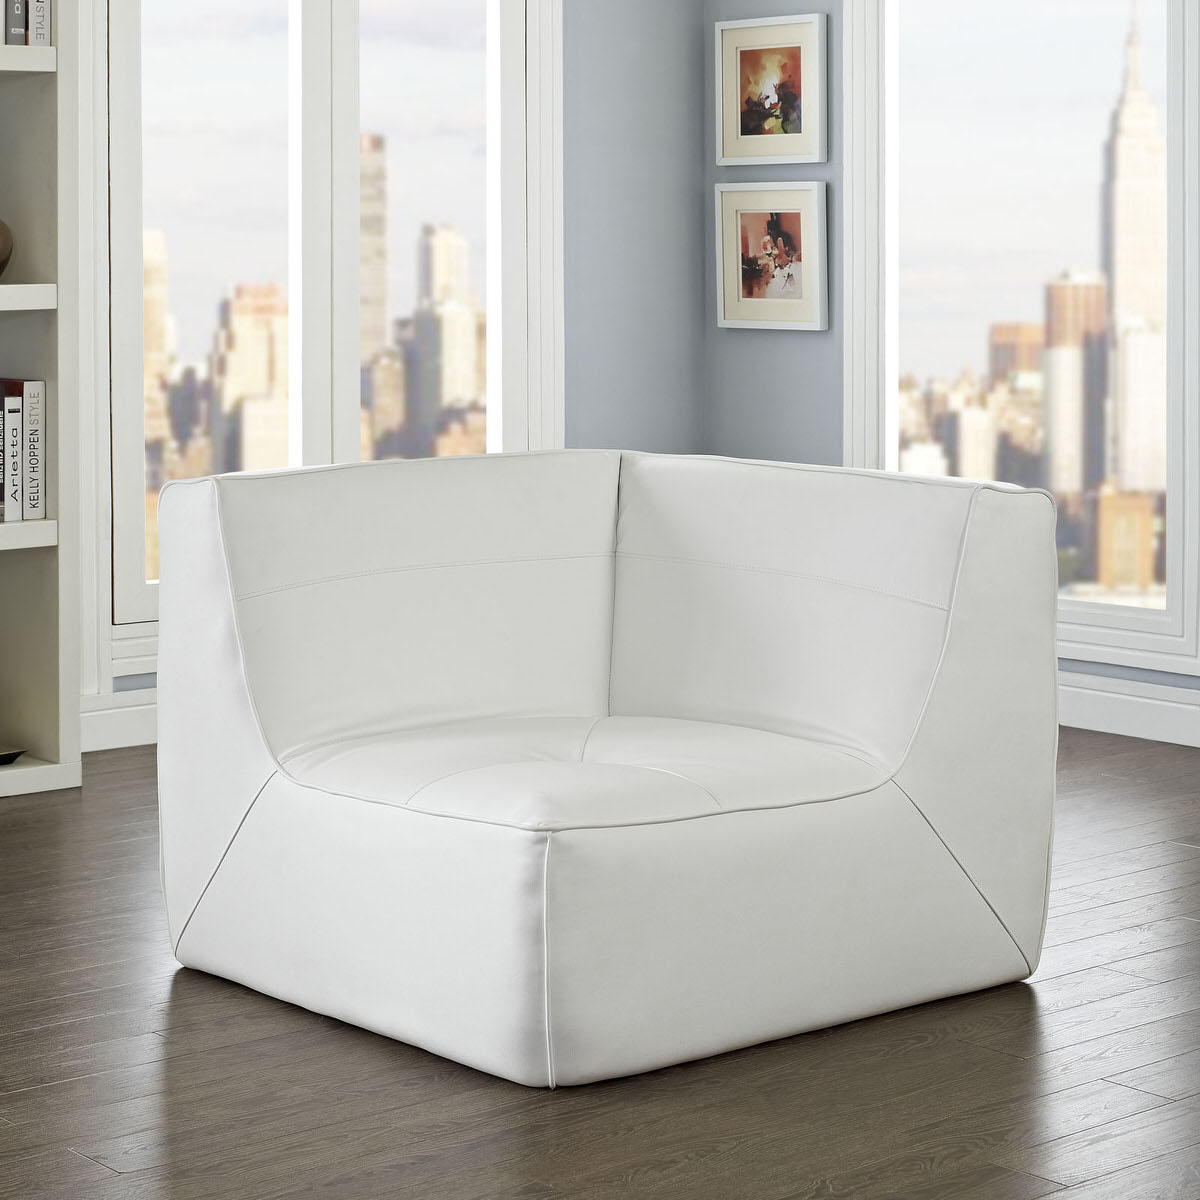 Sensational Align Bonded Leather Corner Sofa White By Modway Beatyapartments Chair Design Images Beatyapartmentscom